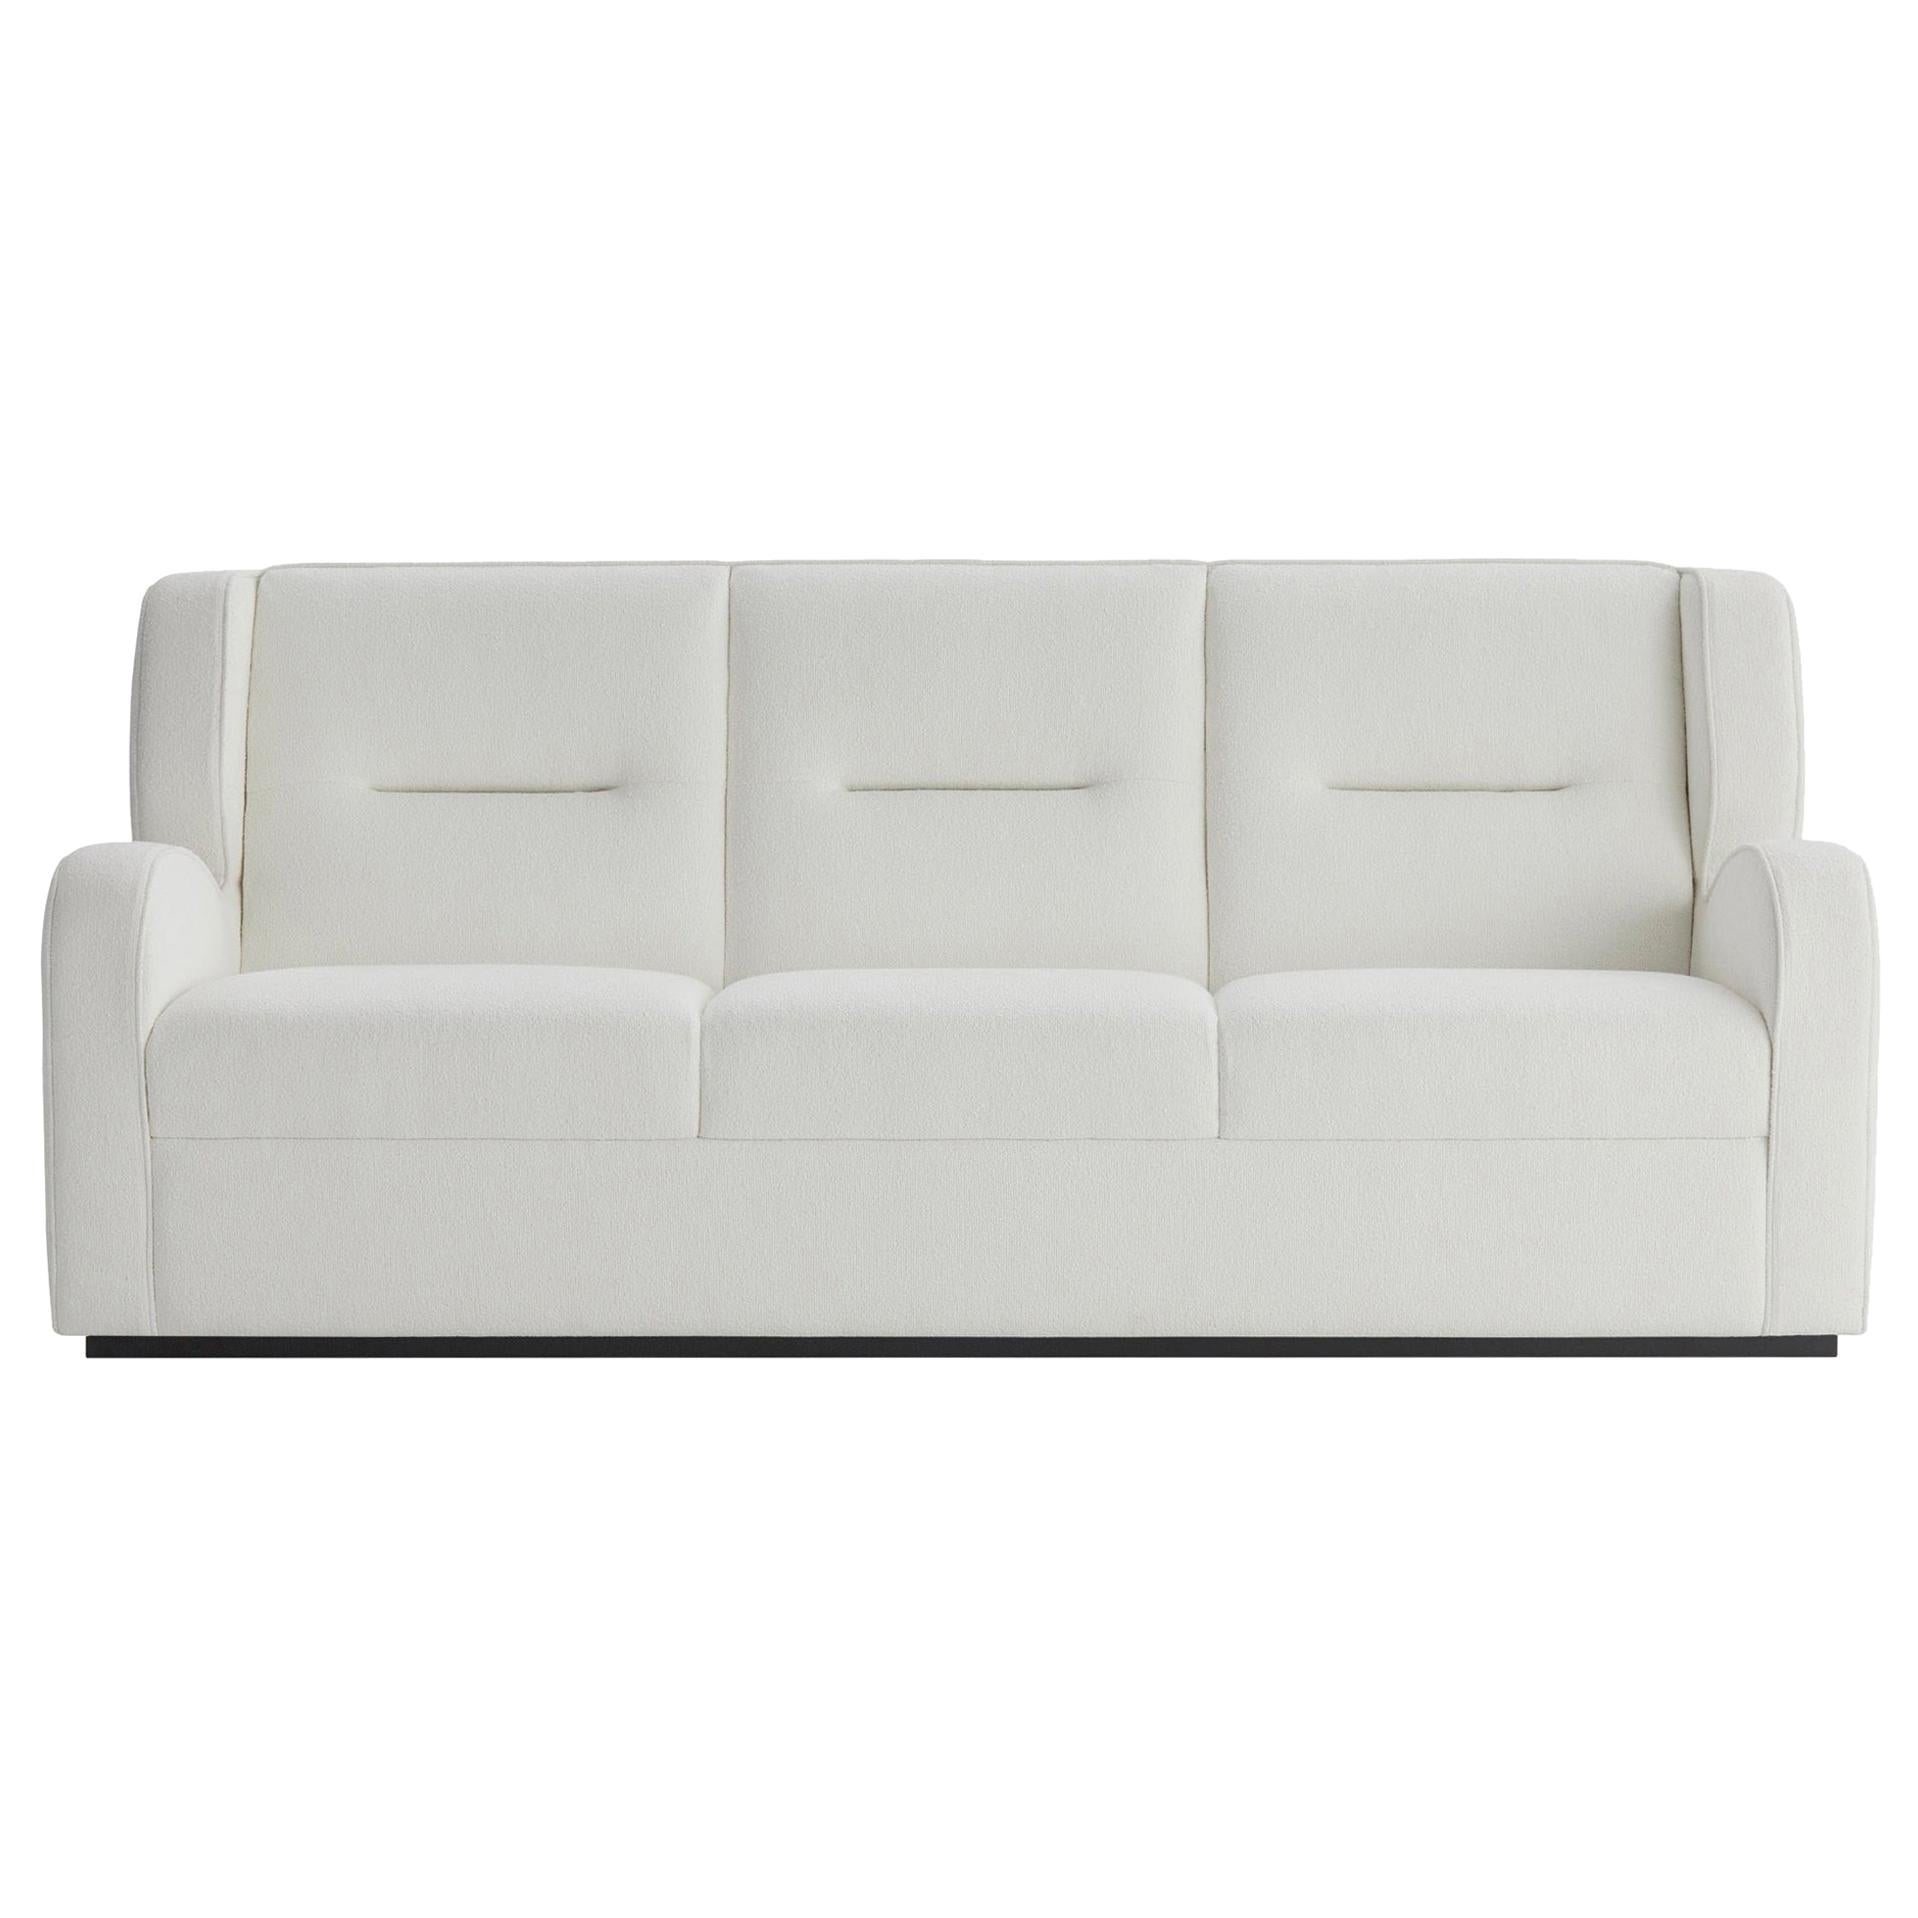 O'neill Sofa in White Gobi with Black Lacquer Plinth